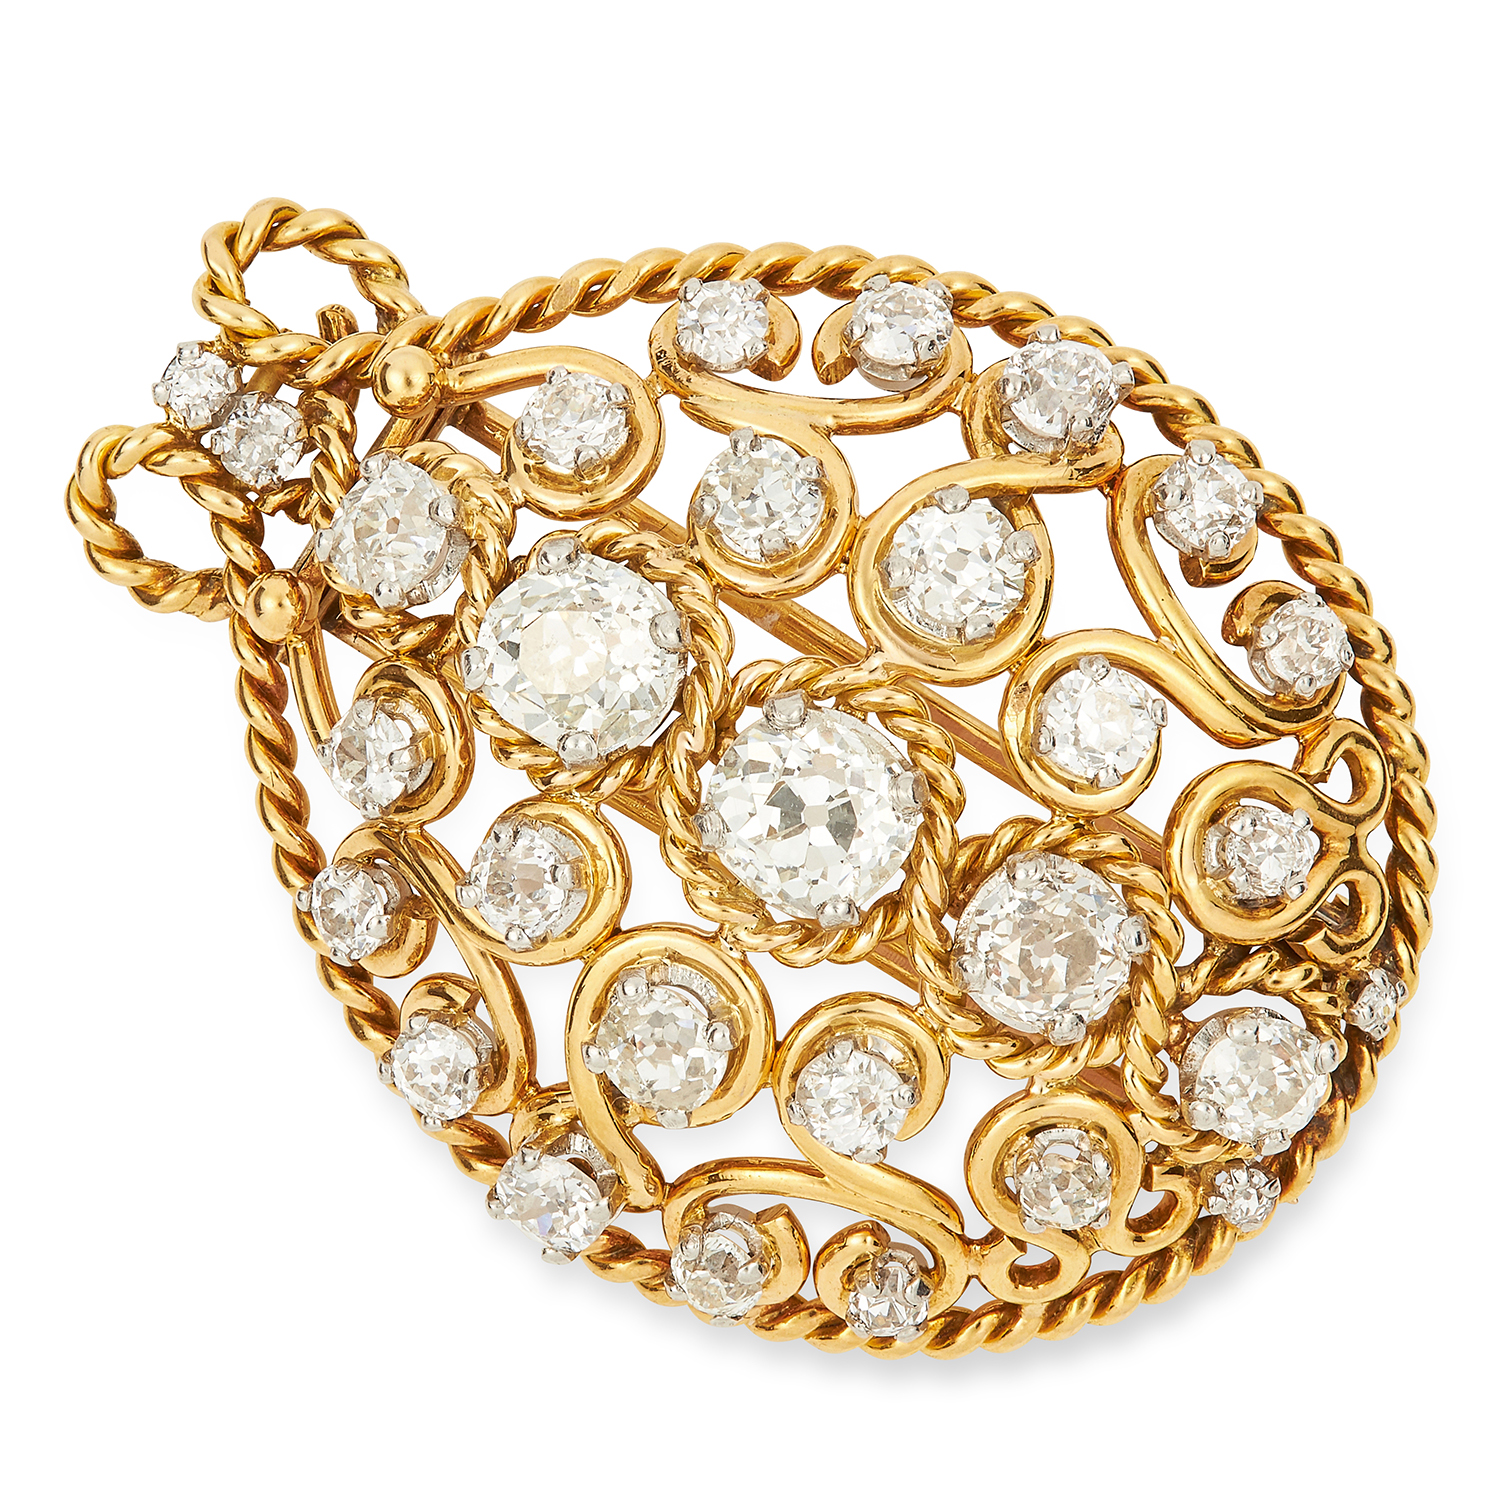 VINTAGE DIAMOND BROOCH / PENDANT set with old cut diamonds in open frame design, 4.0cm, 15.9g.